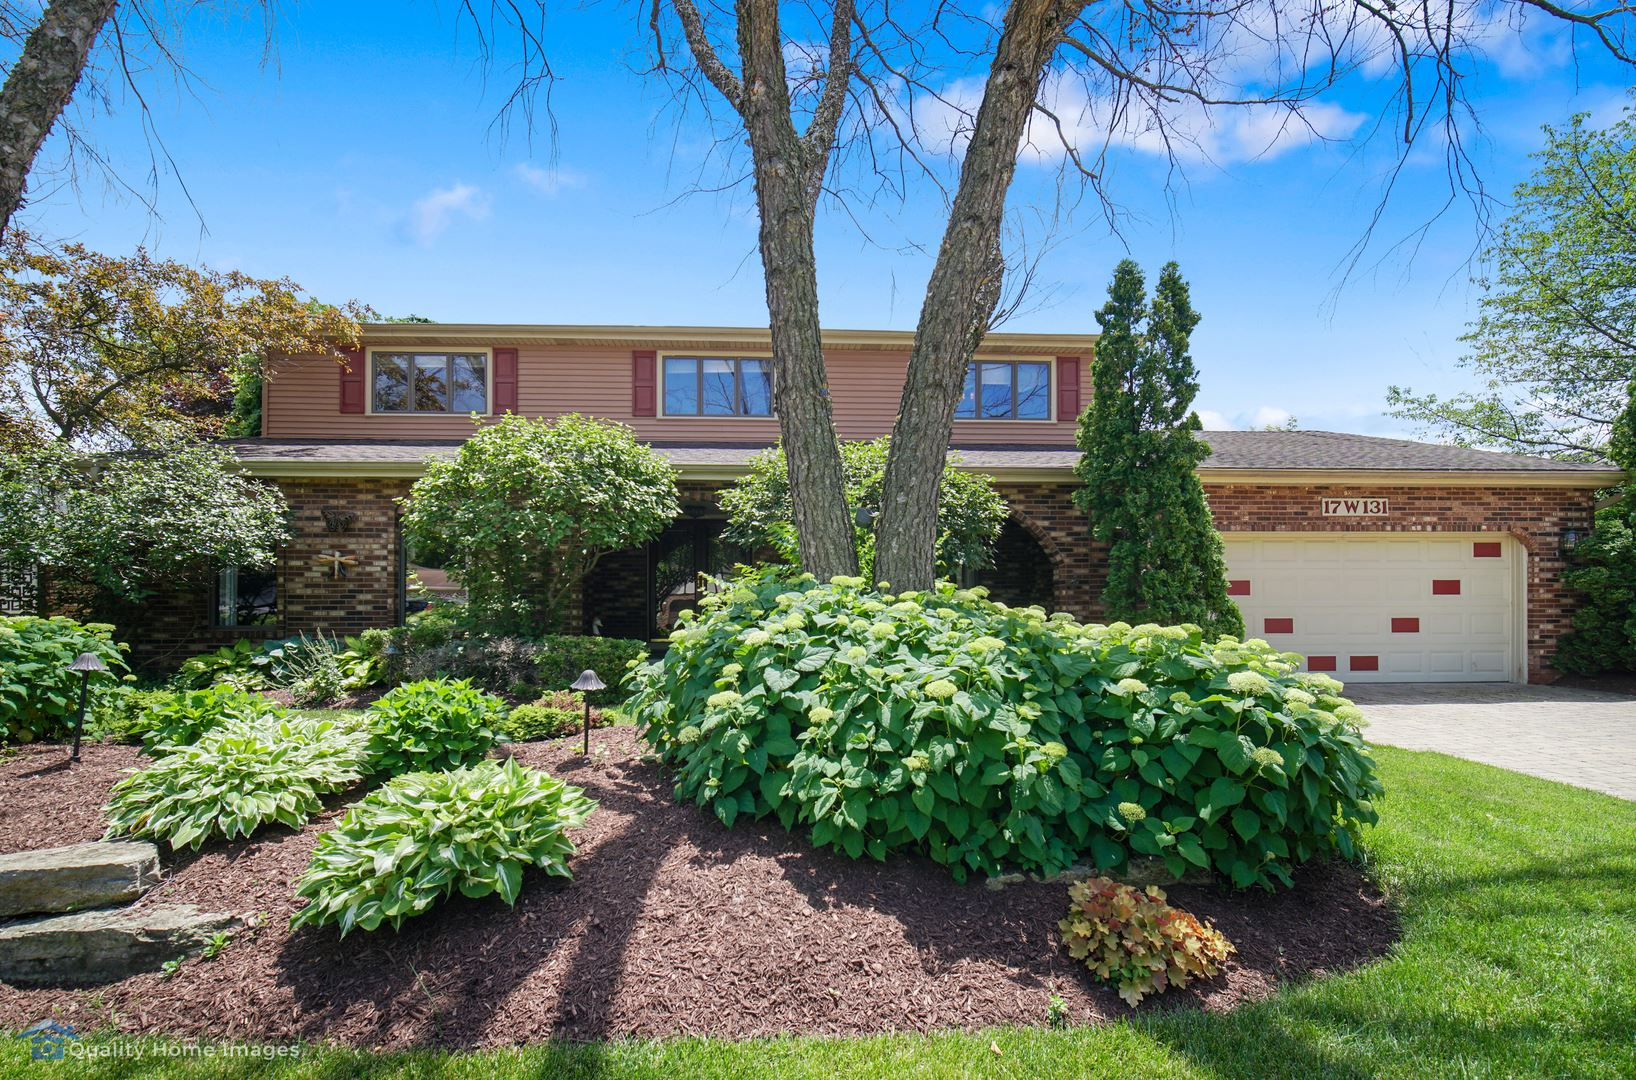 17W131 Terry Trail, Willowbrook, IL 60527 - #: 10796937